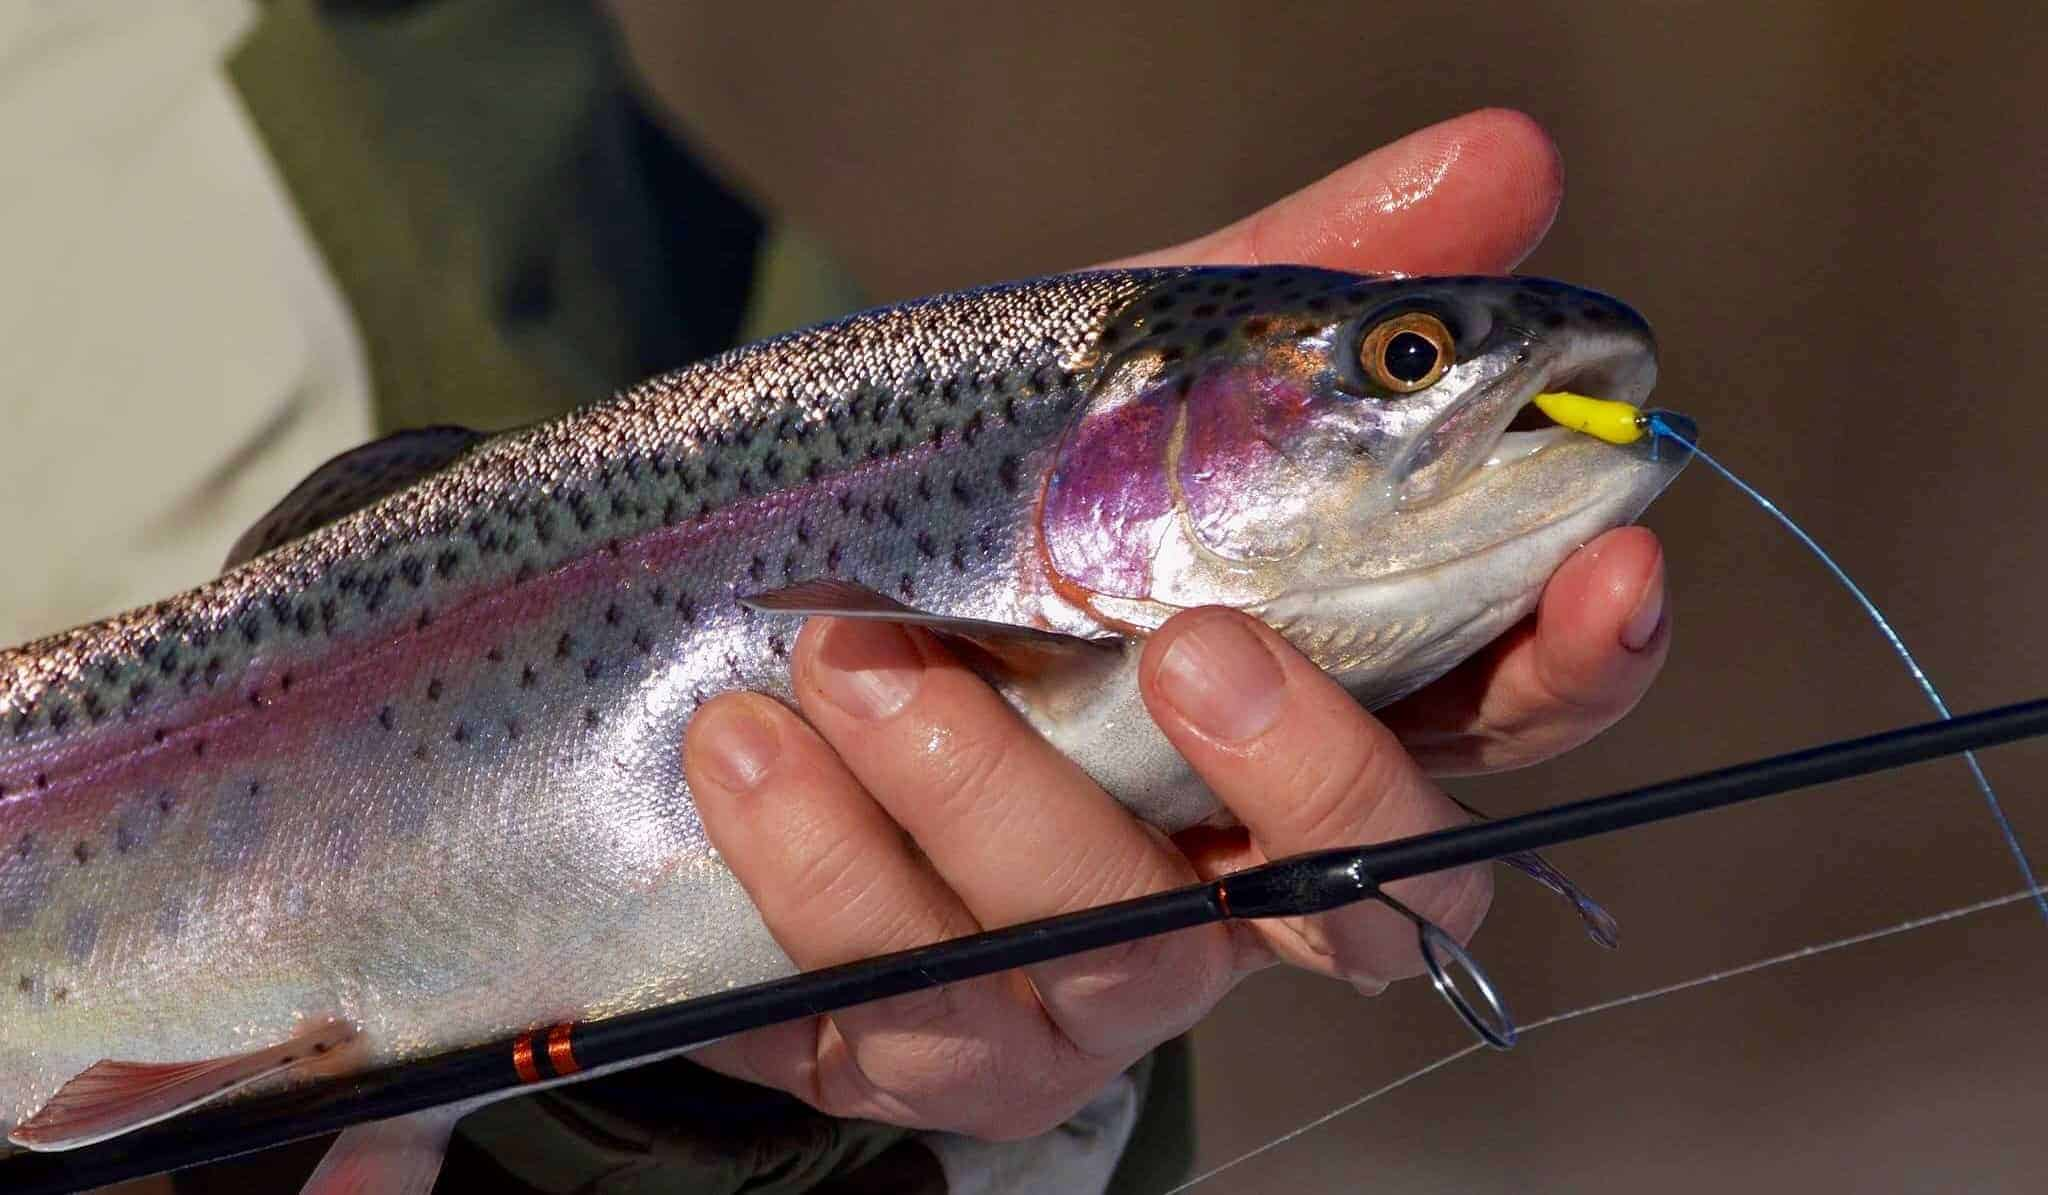 Best Trout Lures And Baits 2019 Buying Guide And Reviews